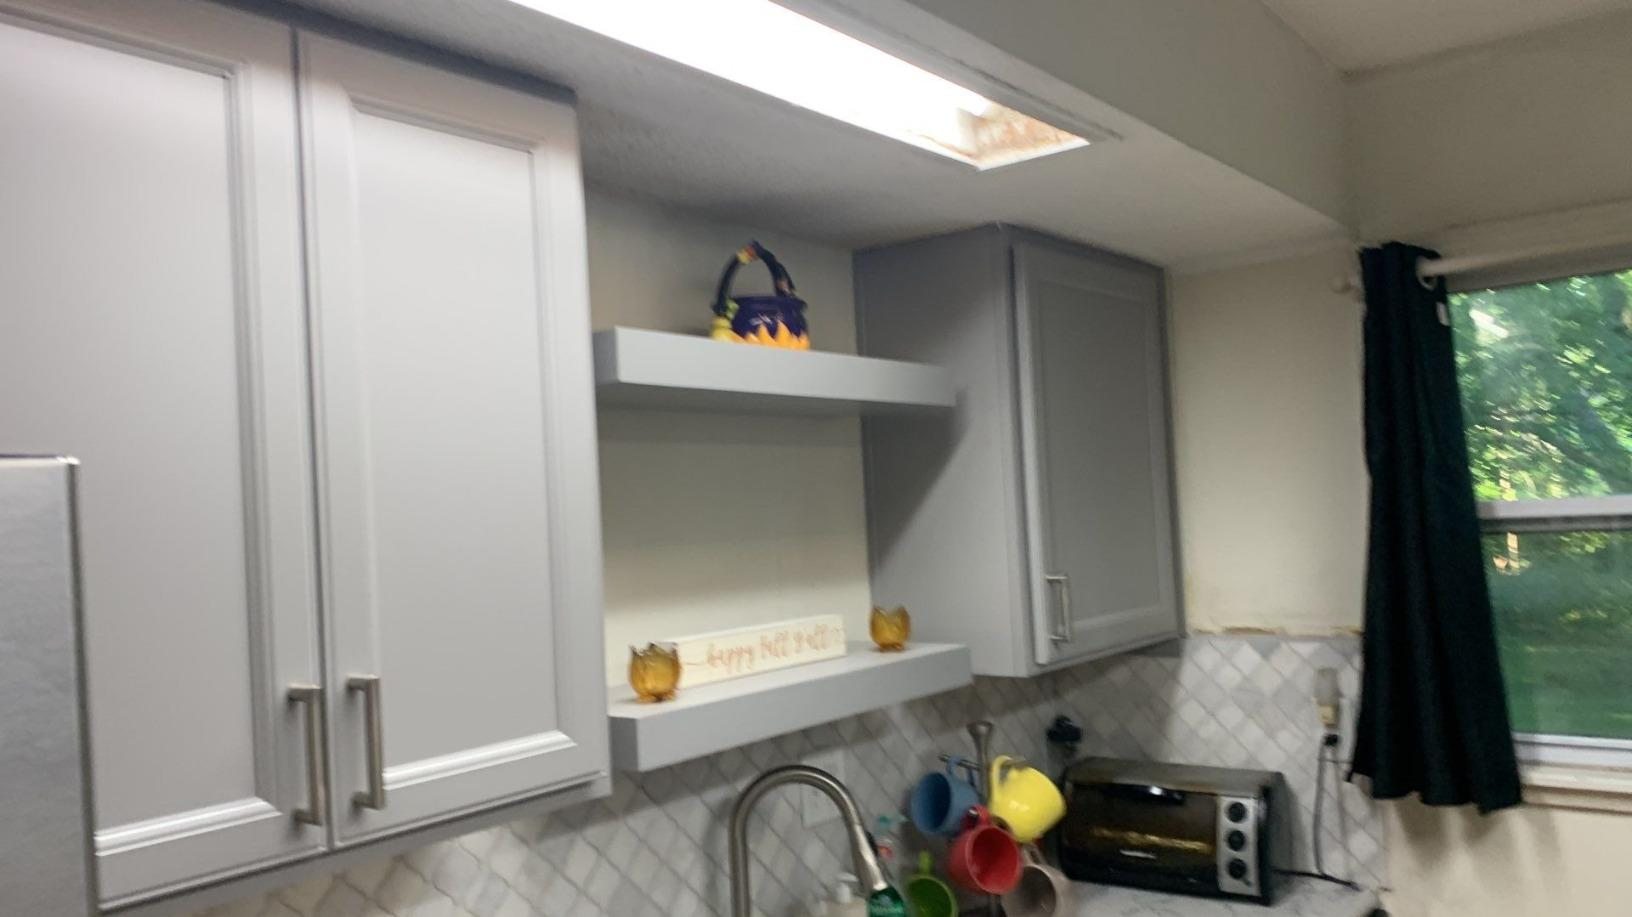 Cabinet (Gray) Installation in a Kitchen in Kansas City, MO - After Photo